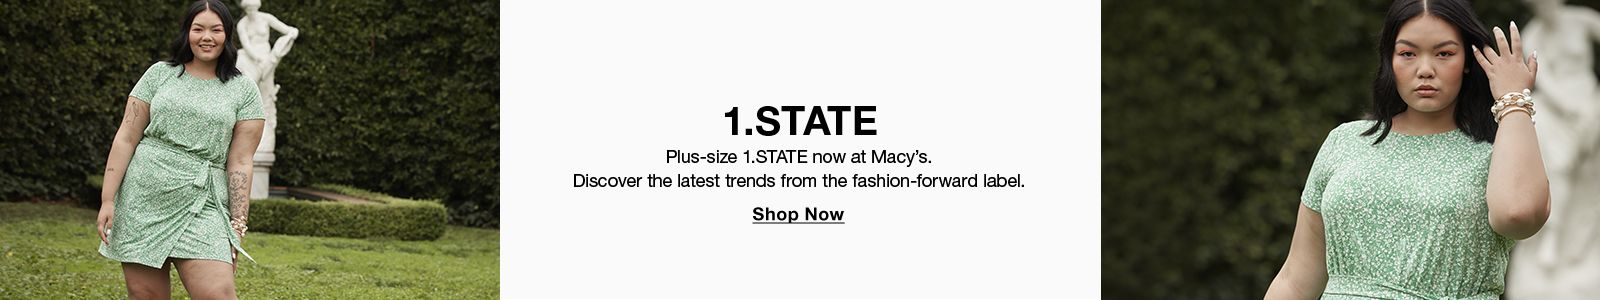 1.State, Plus-size 1.State now at Macy's, Shop Now